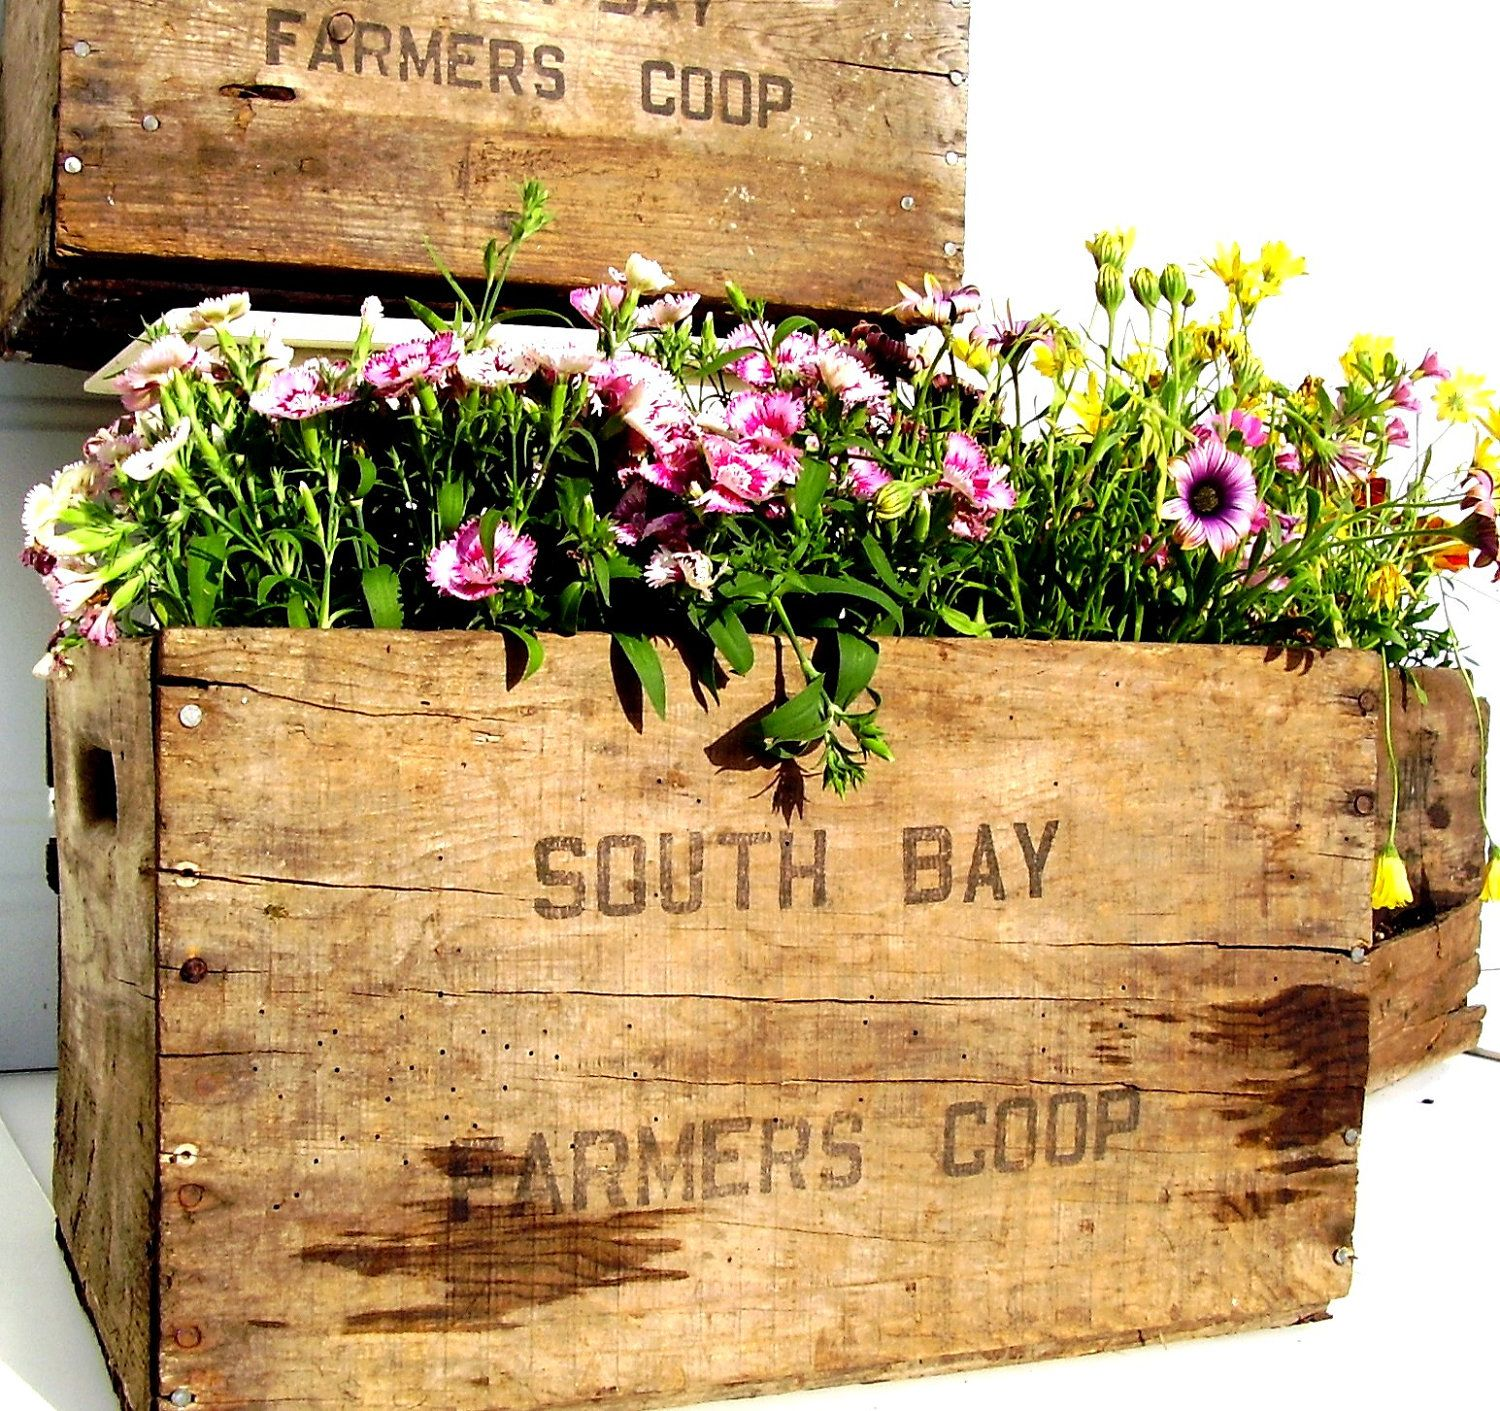 Vintage Rustic Wooden Crate Planters To Line The Aisle Saw Some Pre Made Ones At Osh Of All Places Wooden Crates Rustic Rustic Wood Box Vintage Wooden Crates